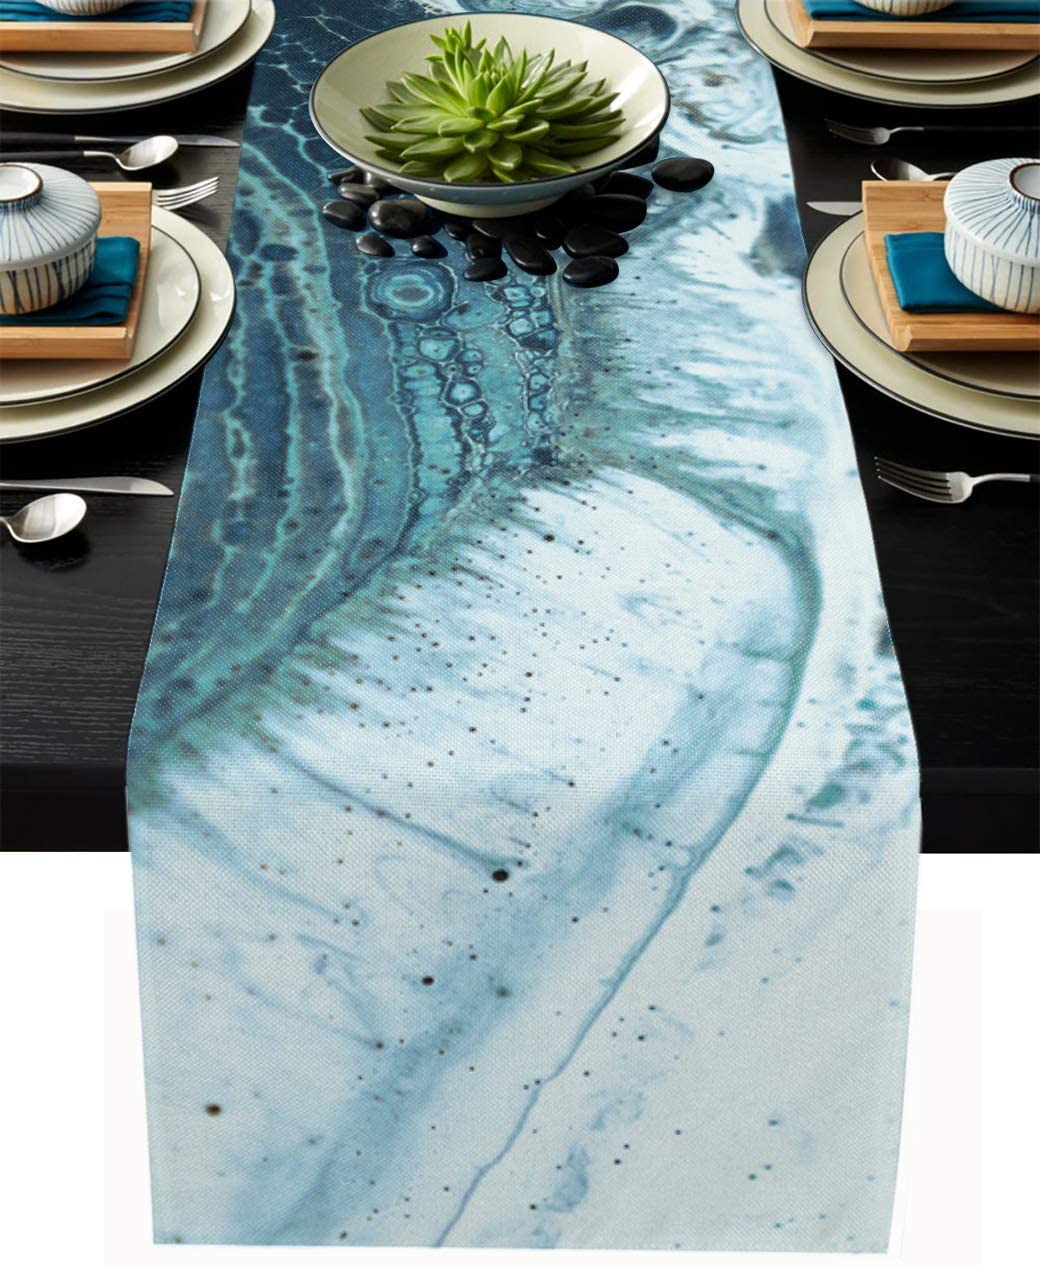 Marble Table Runner-Cotton linen-Long 72 inche Turquoise Dresser Scarves,Ink Texture Tablerunner for Kitchen Coffee/Dining/Sofa/End Table Bedroom Home Living Room,Scarfs Decor for Holiday Dinner